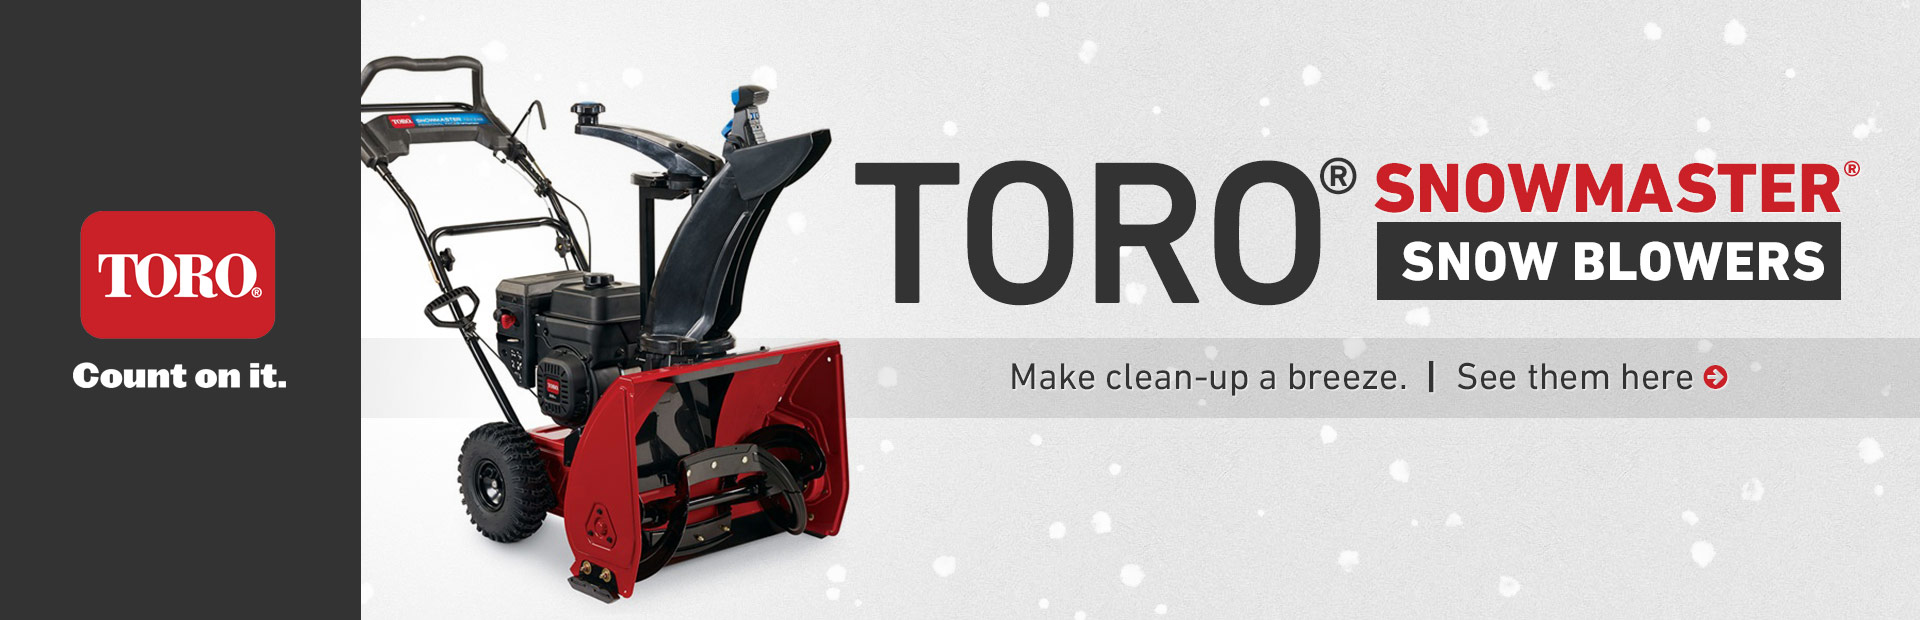 Toro SnowMaster® Snow Blowers: Click here to view the models.